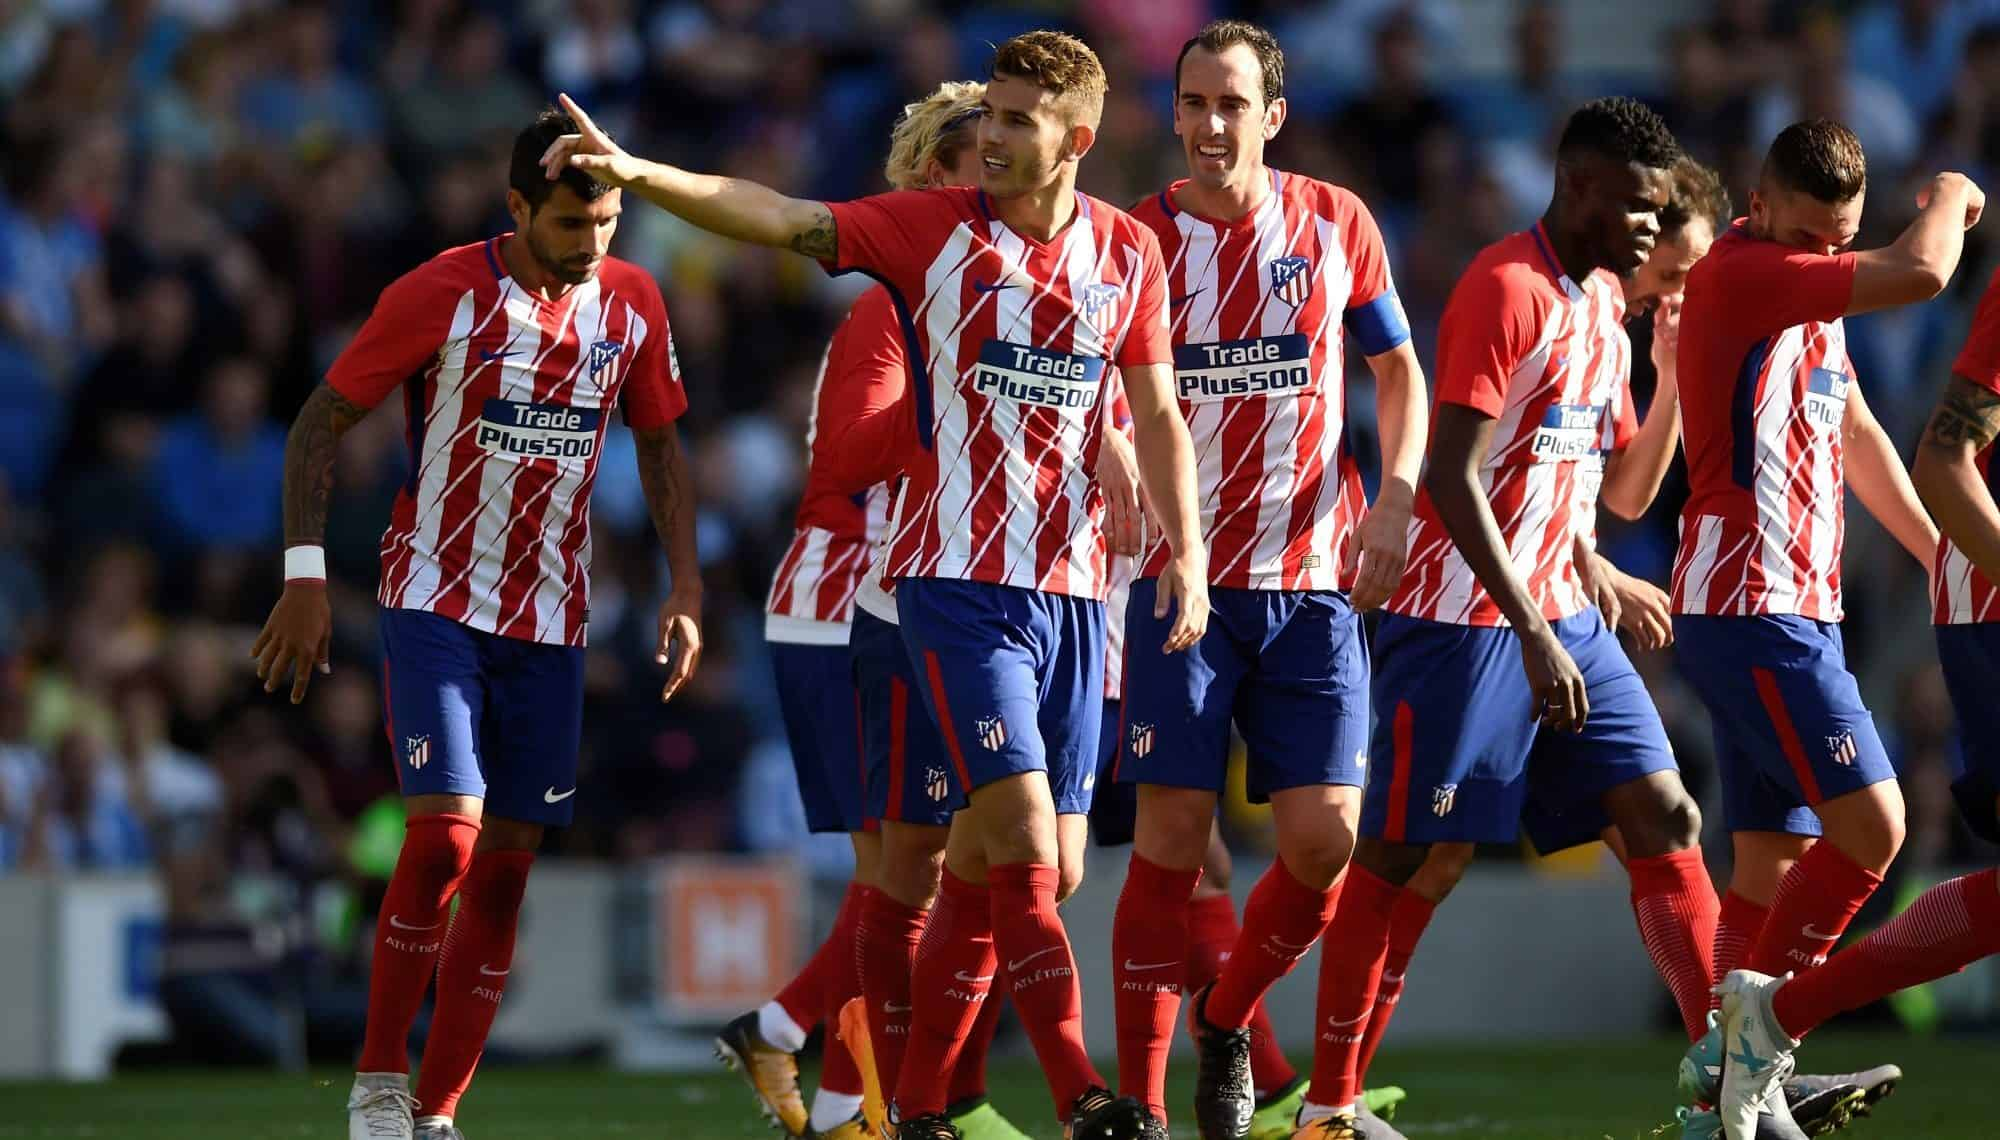 ATLÉTICO MADRID football team 2019